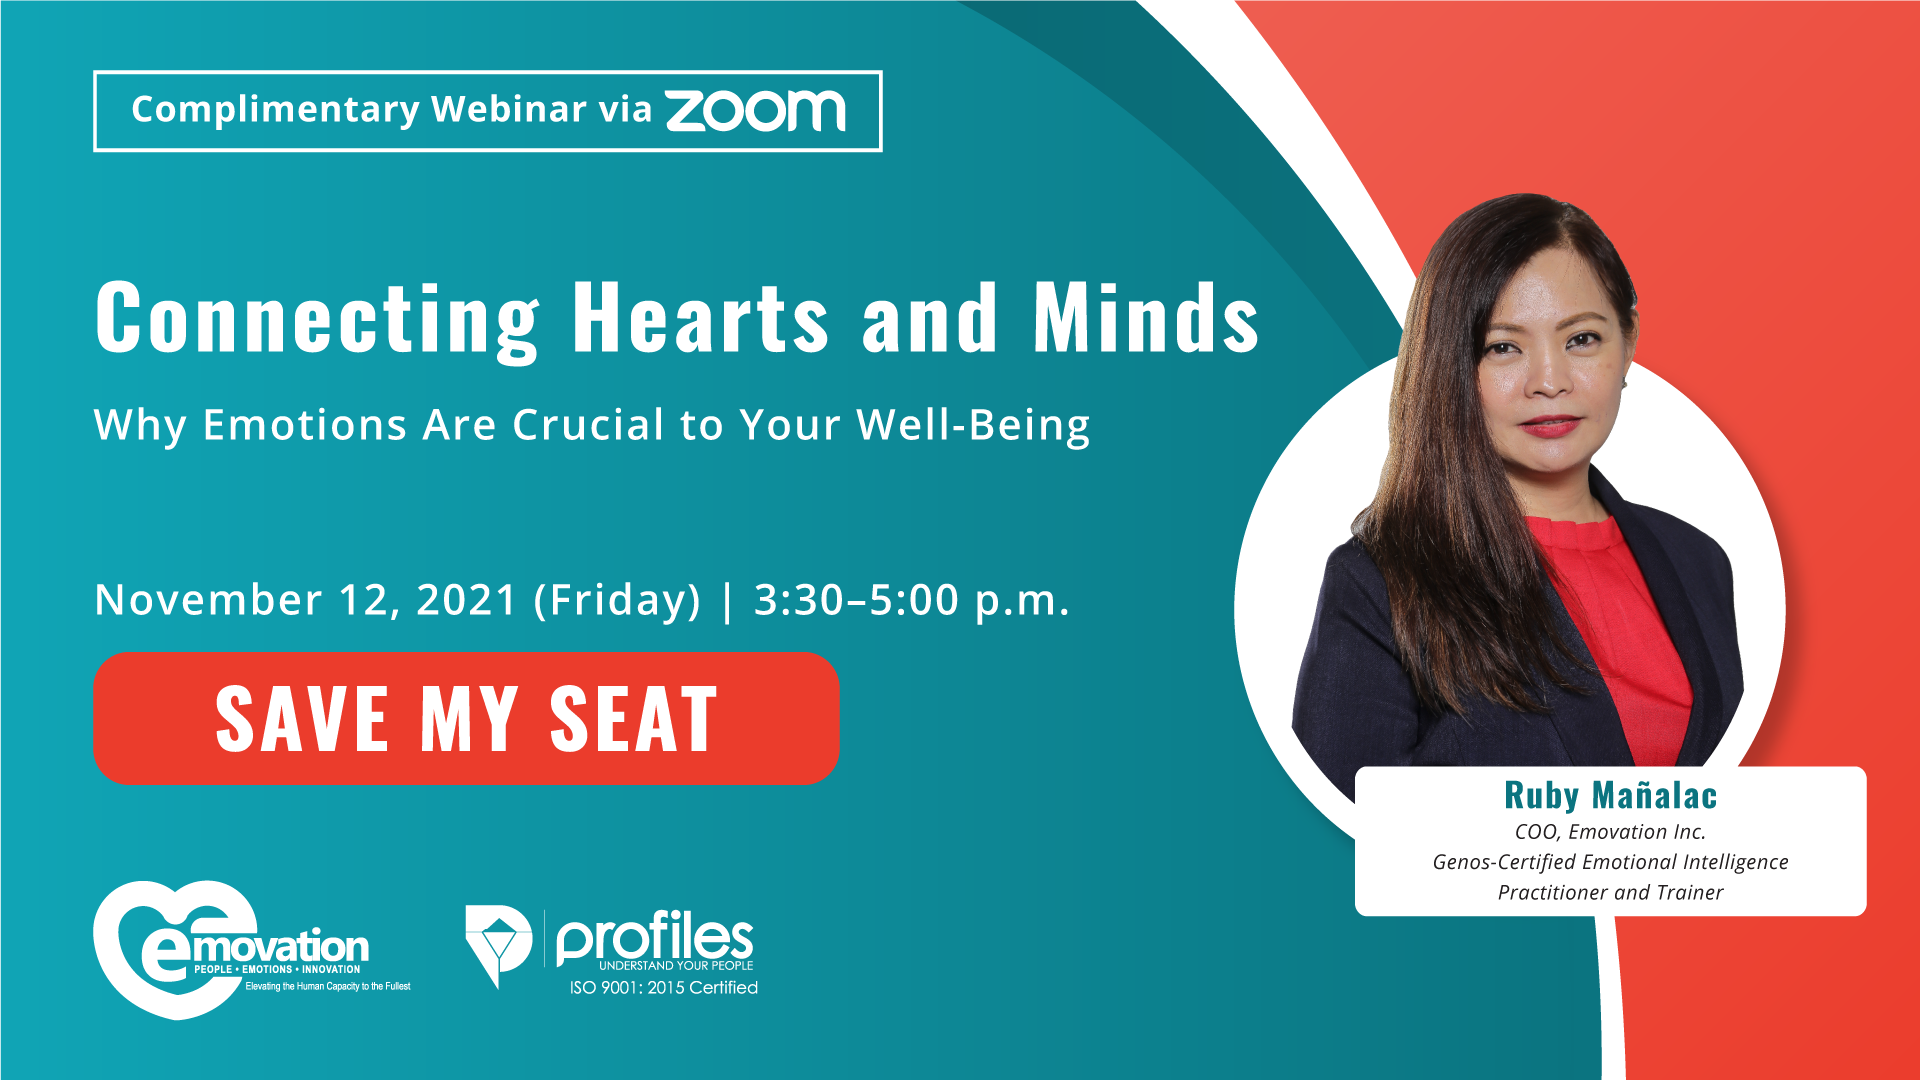 Connecting Hearts and Minds Webinar